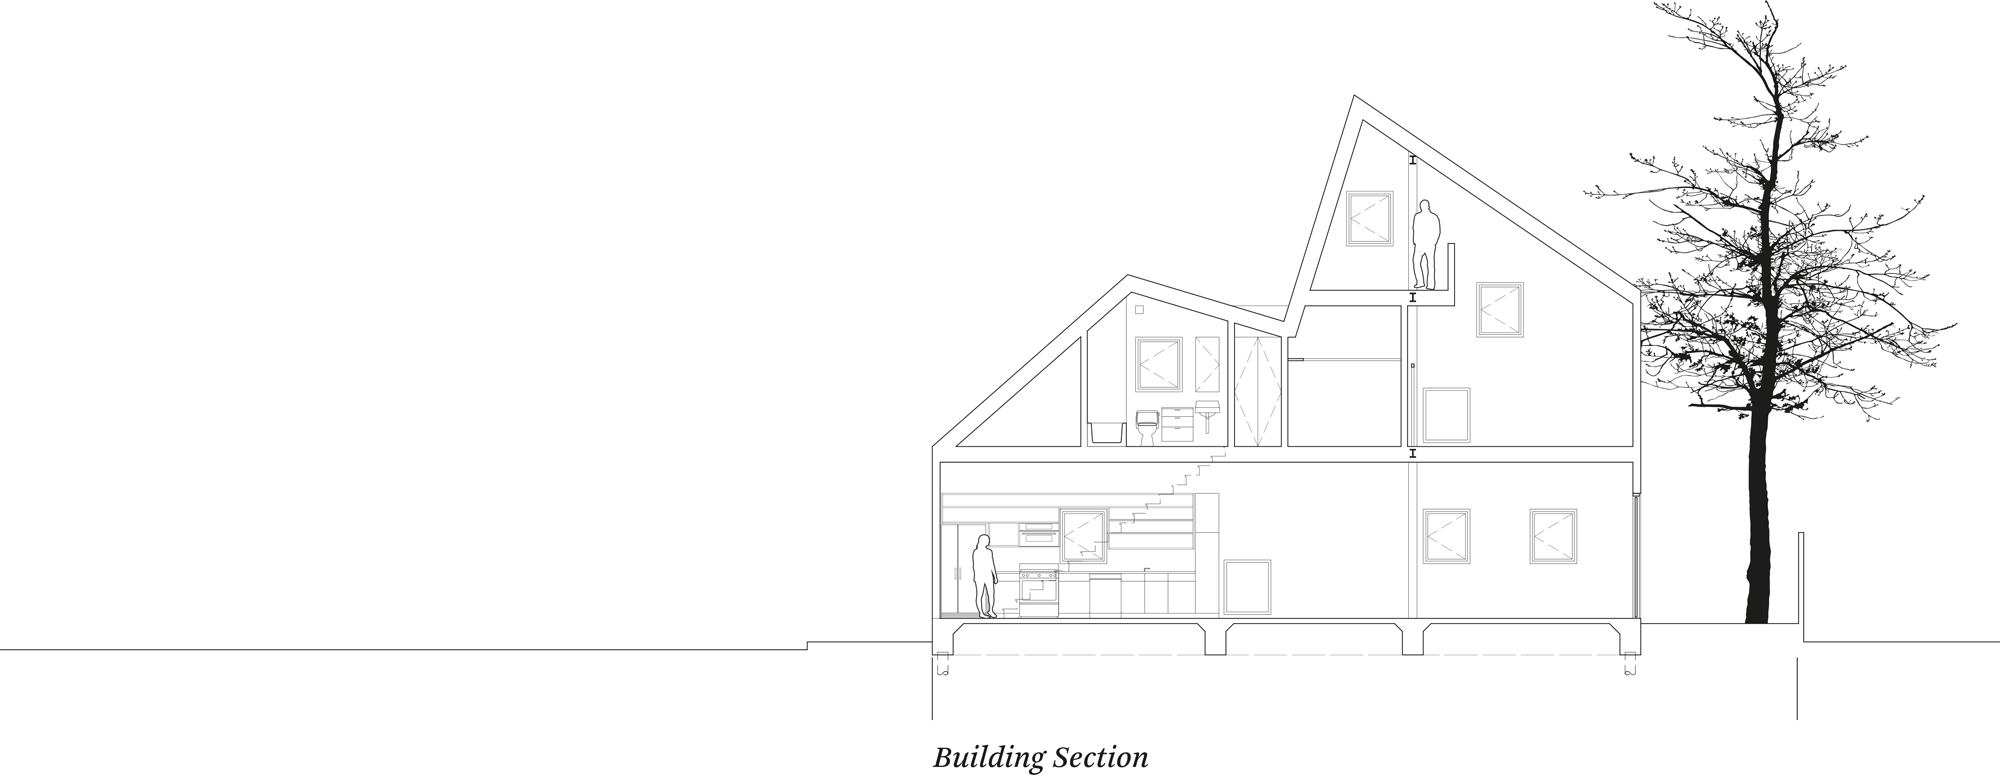 Section of the first Starter Home* by OJT (Office of Jonathan Tate)